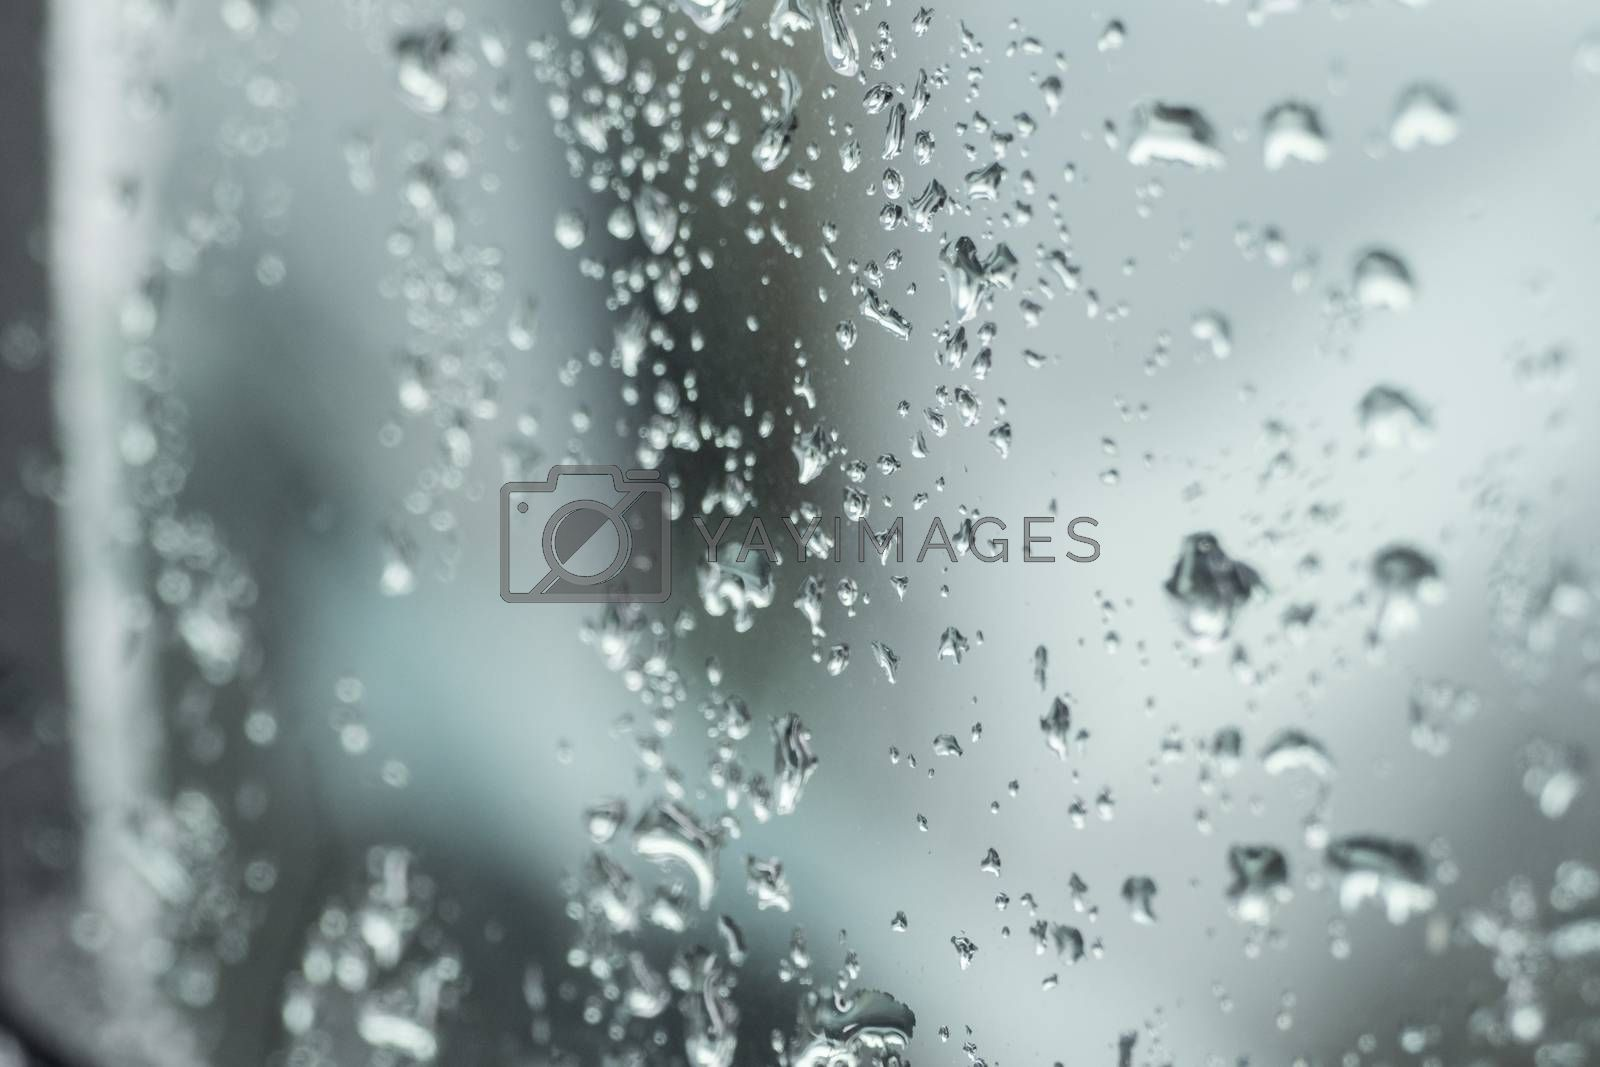 Many small drops of water on the car window by Sandra Fotodesign